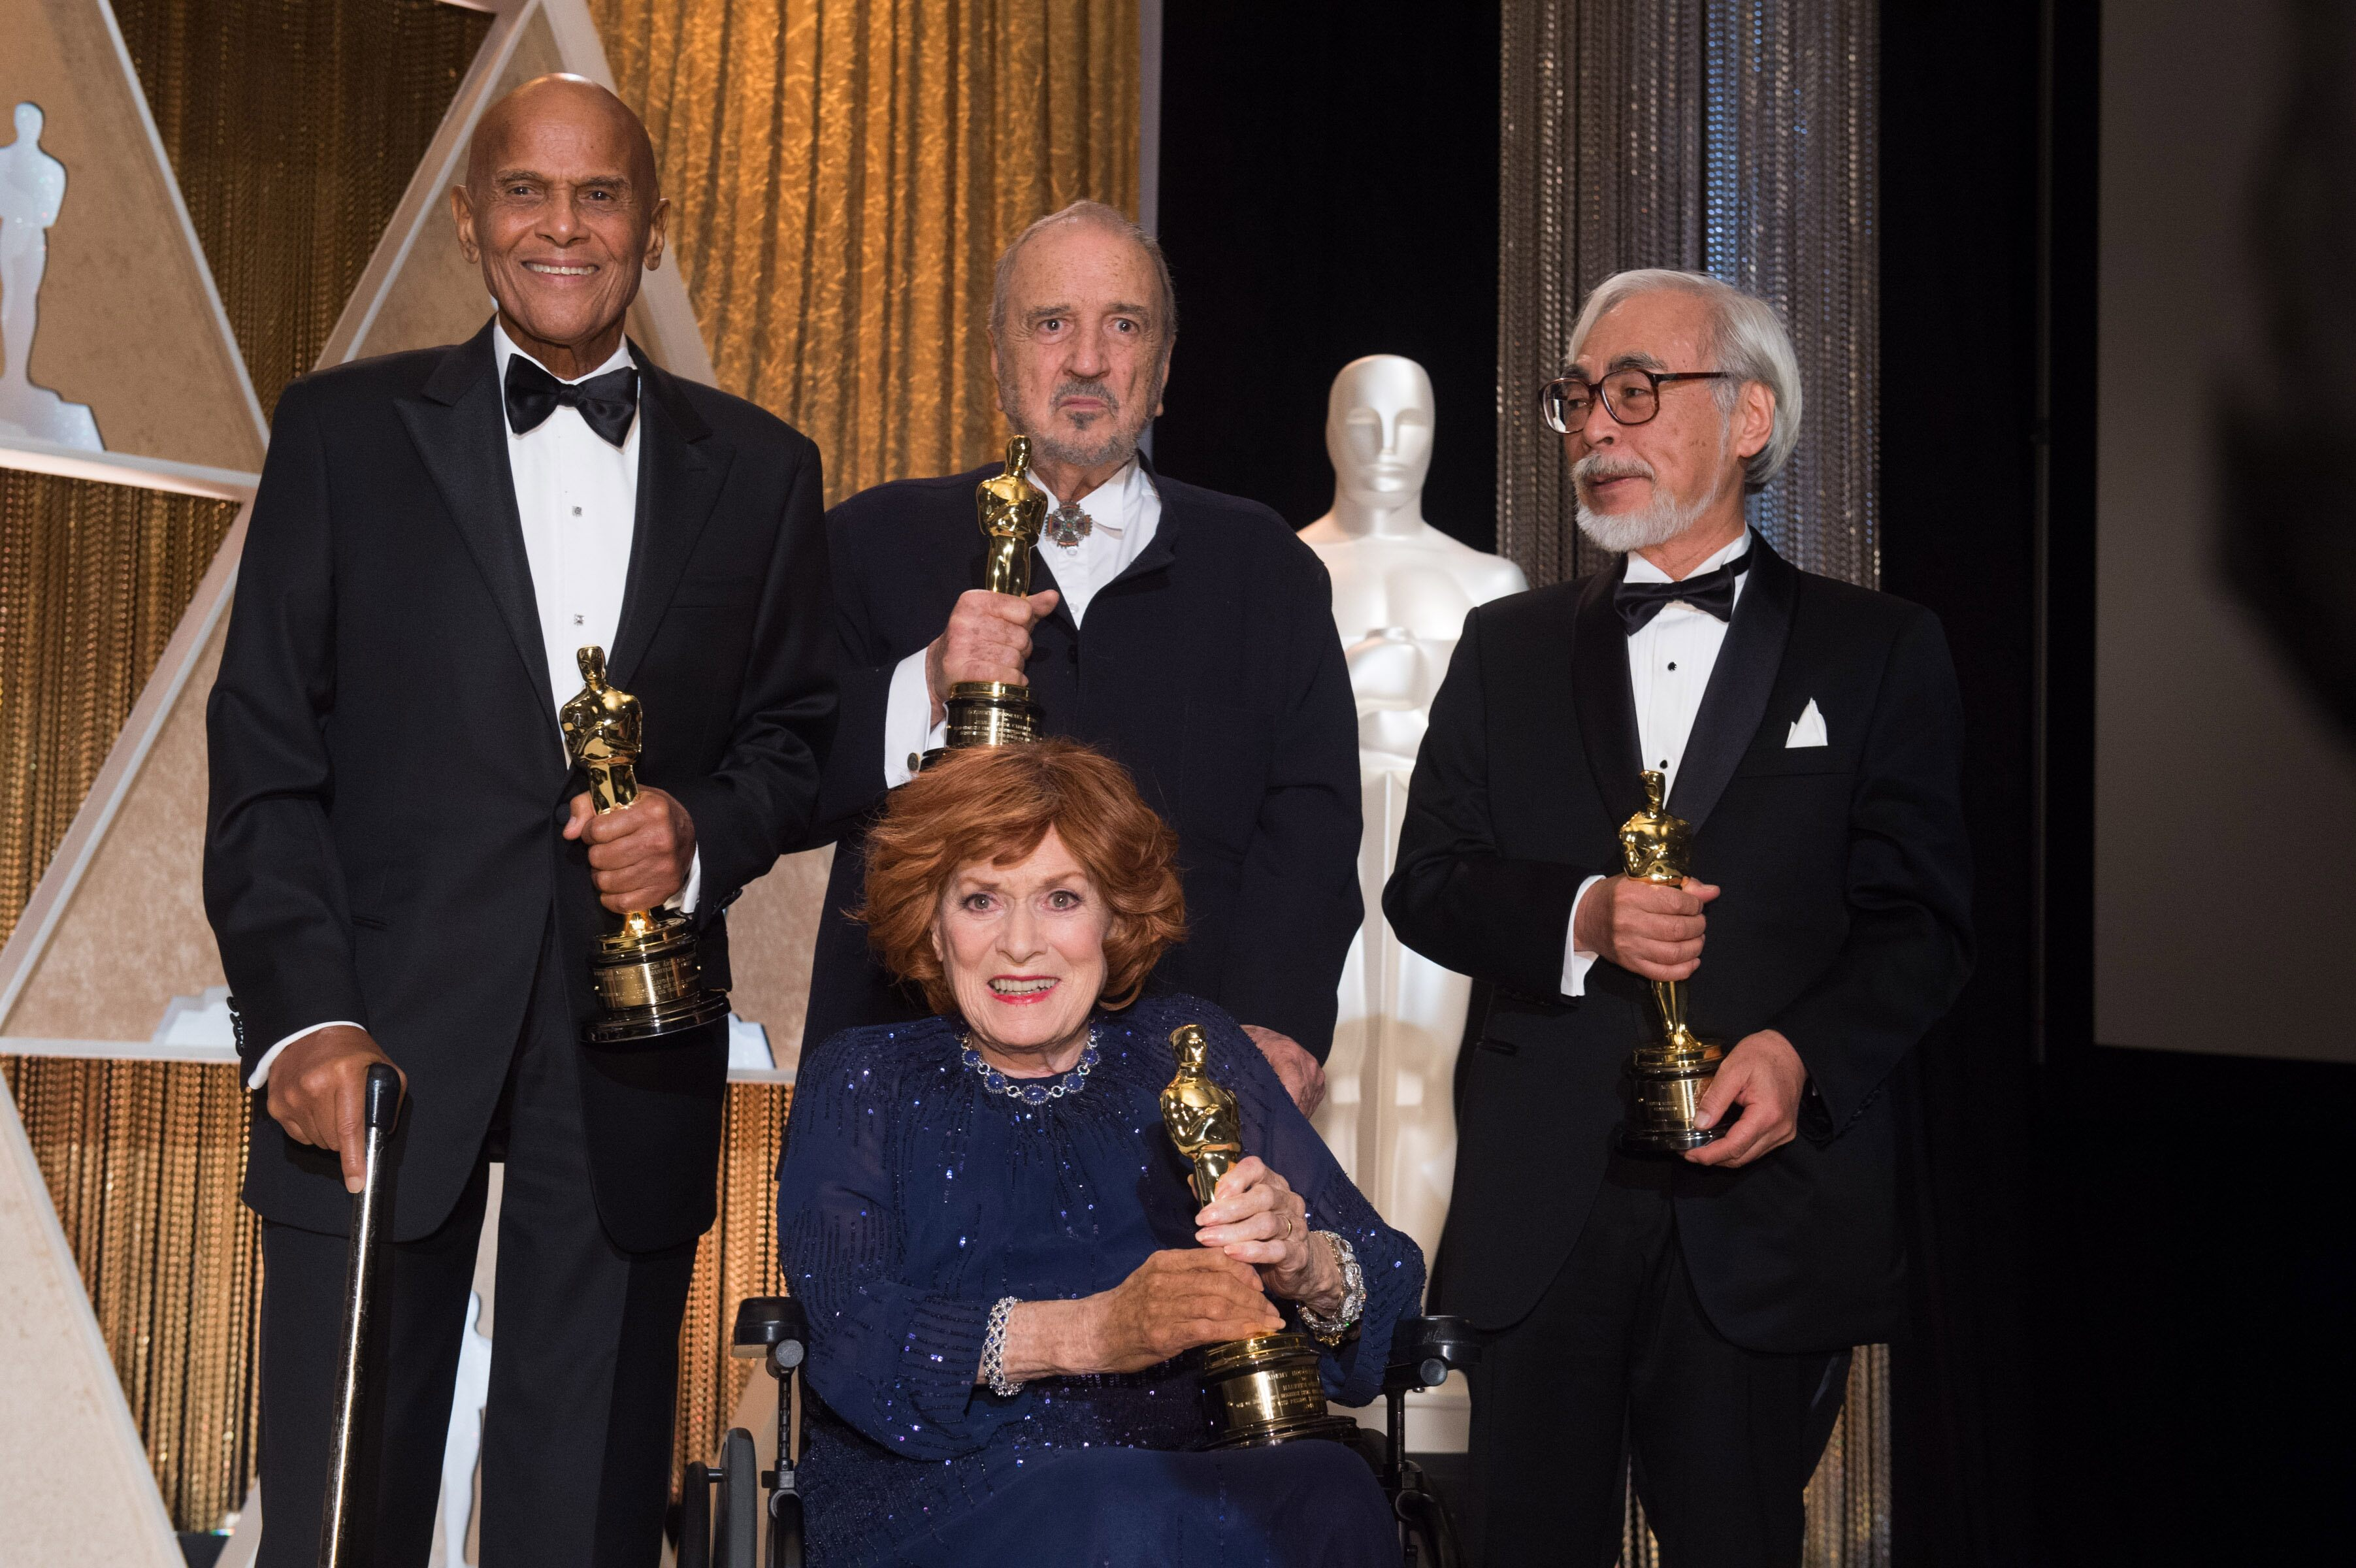 Honorary Awards were presented to Jean-Claude Carrière, Hayao Miyazaki and Maureen O'Hara, and the Jean Hersholt Humanitarian Award to Harry Belafonte.